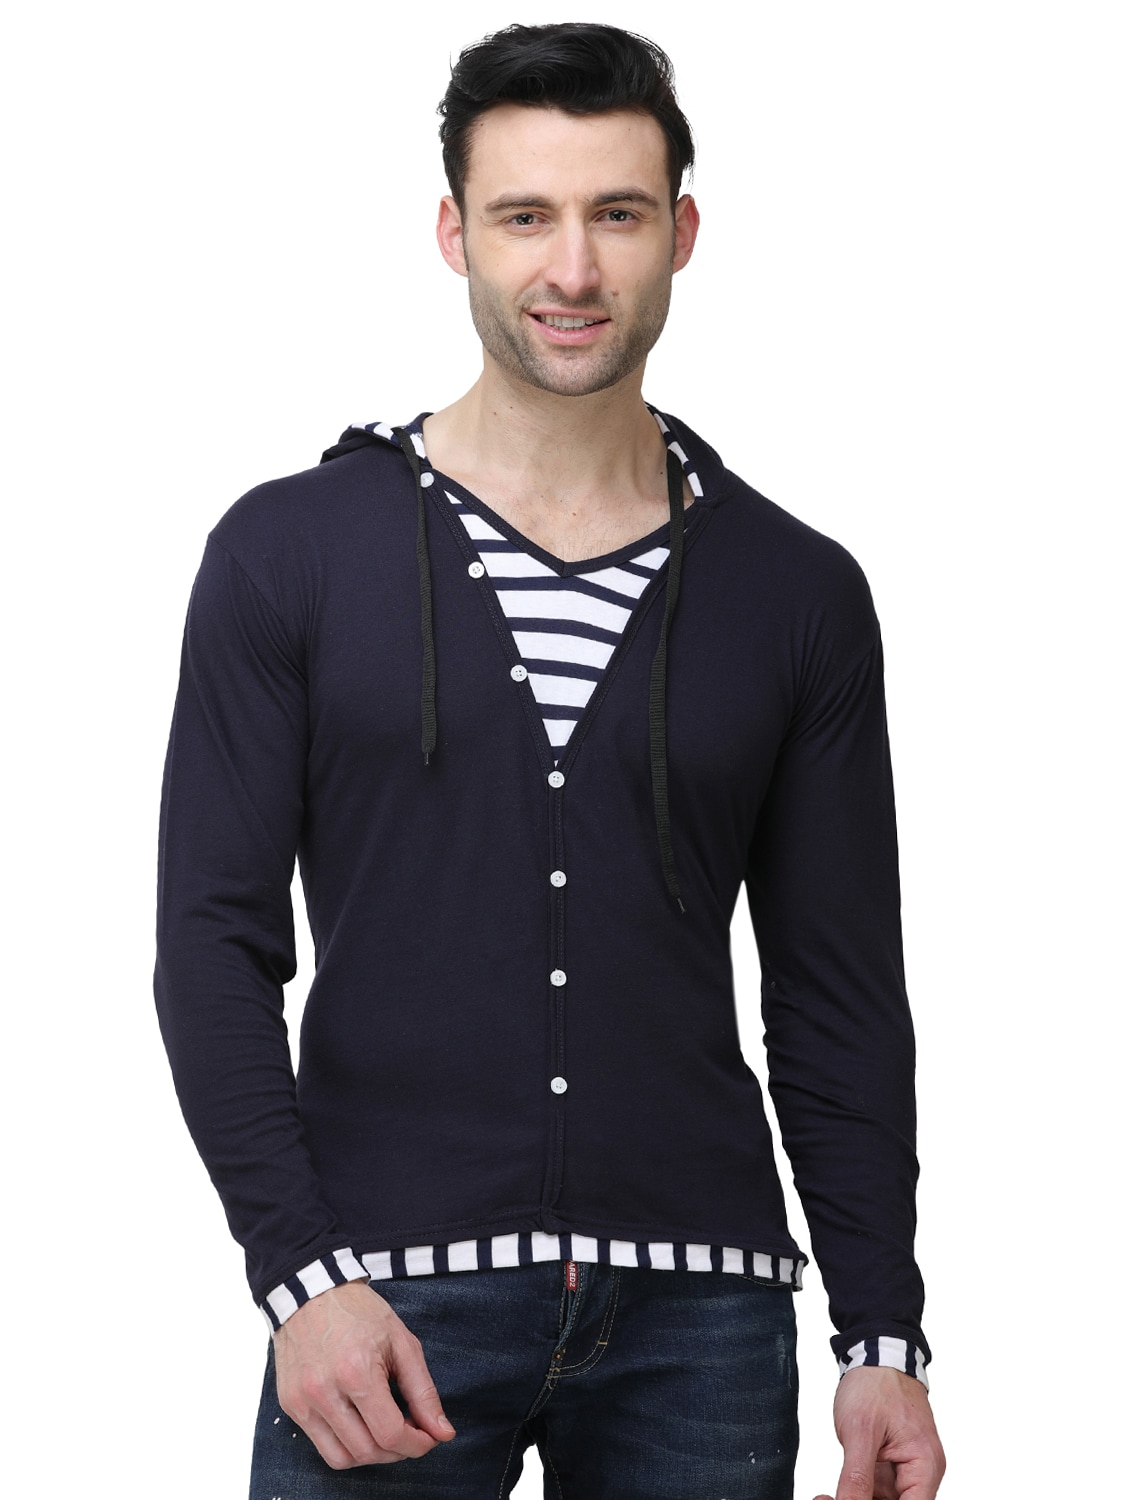 7f228c419 Buy Navy Blue Striped Hooded T-shirt for Men from J2j for ₹435 at ...